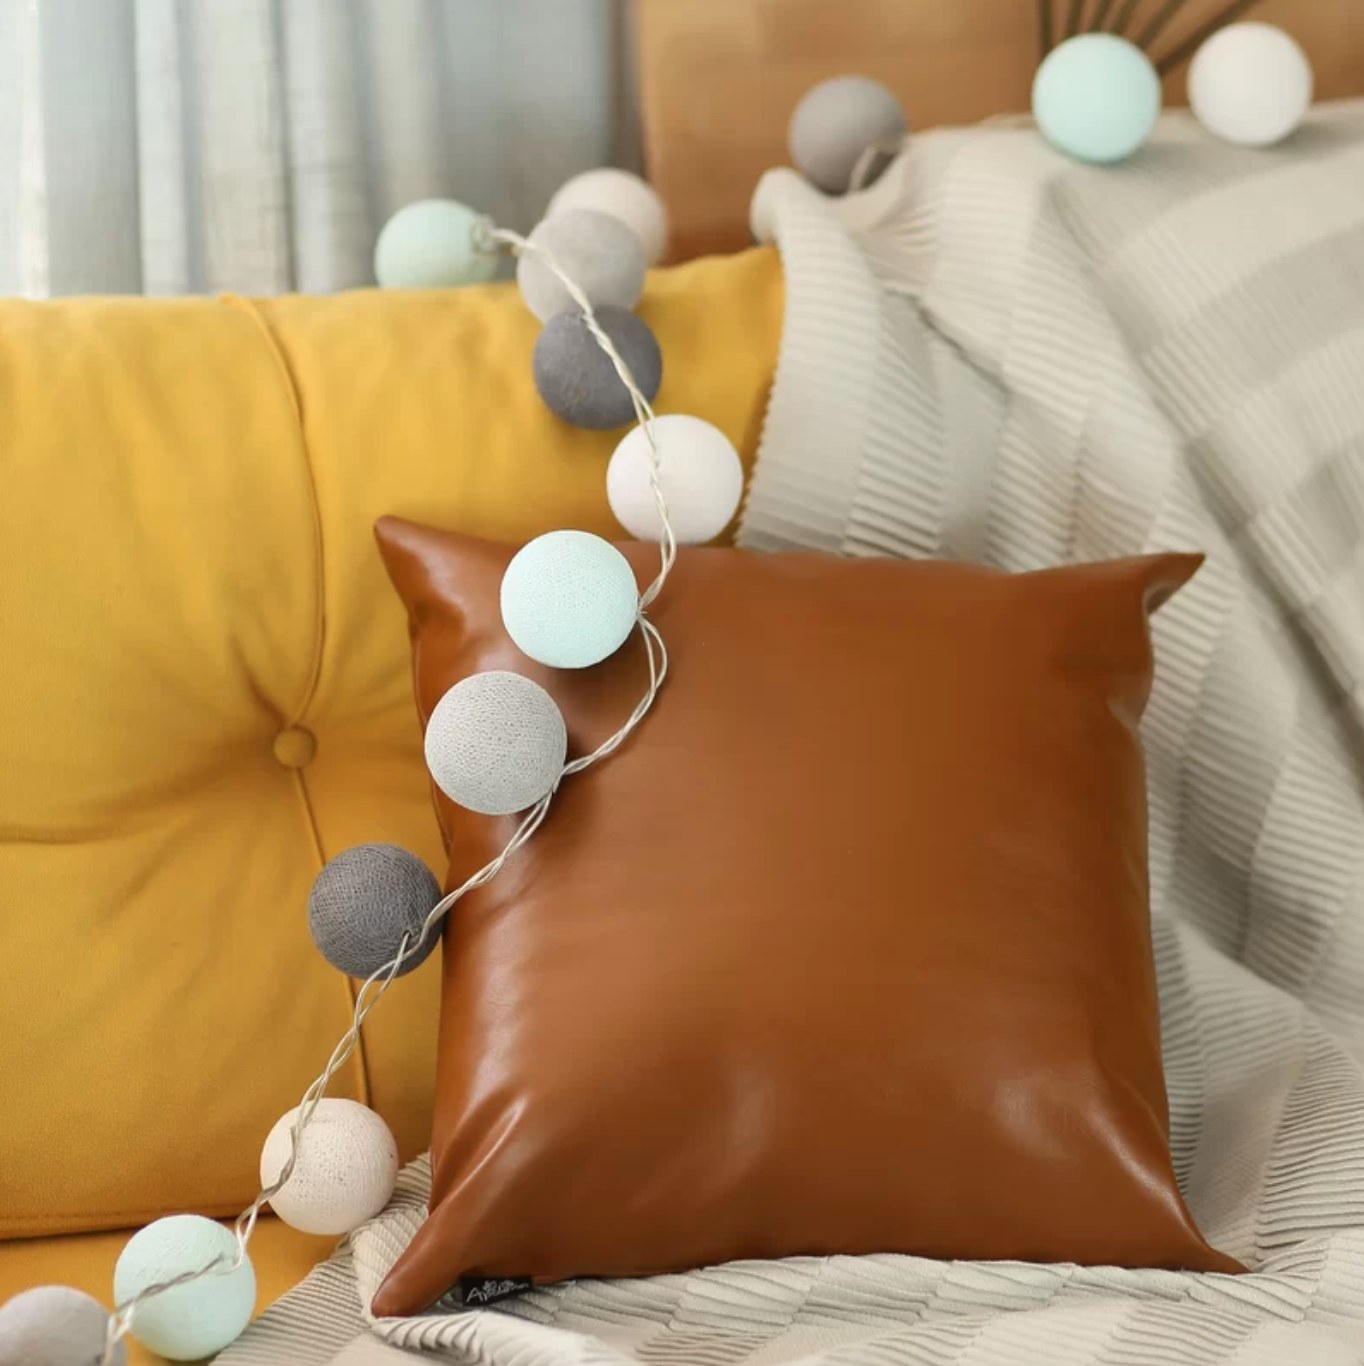 The brown pillow on a couch with string lights draped across it